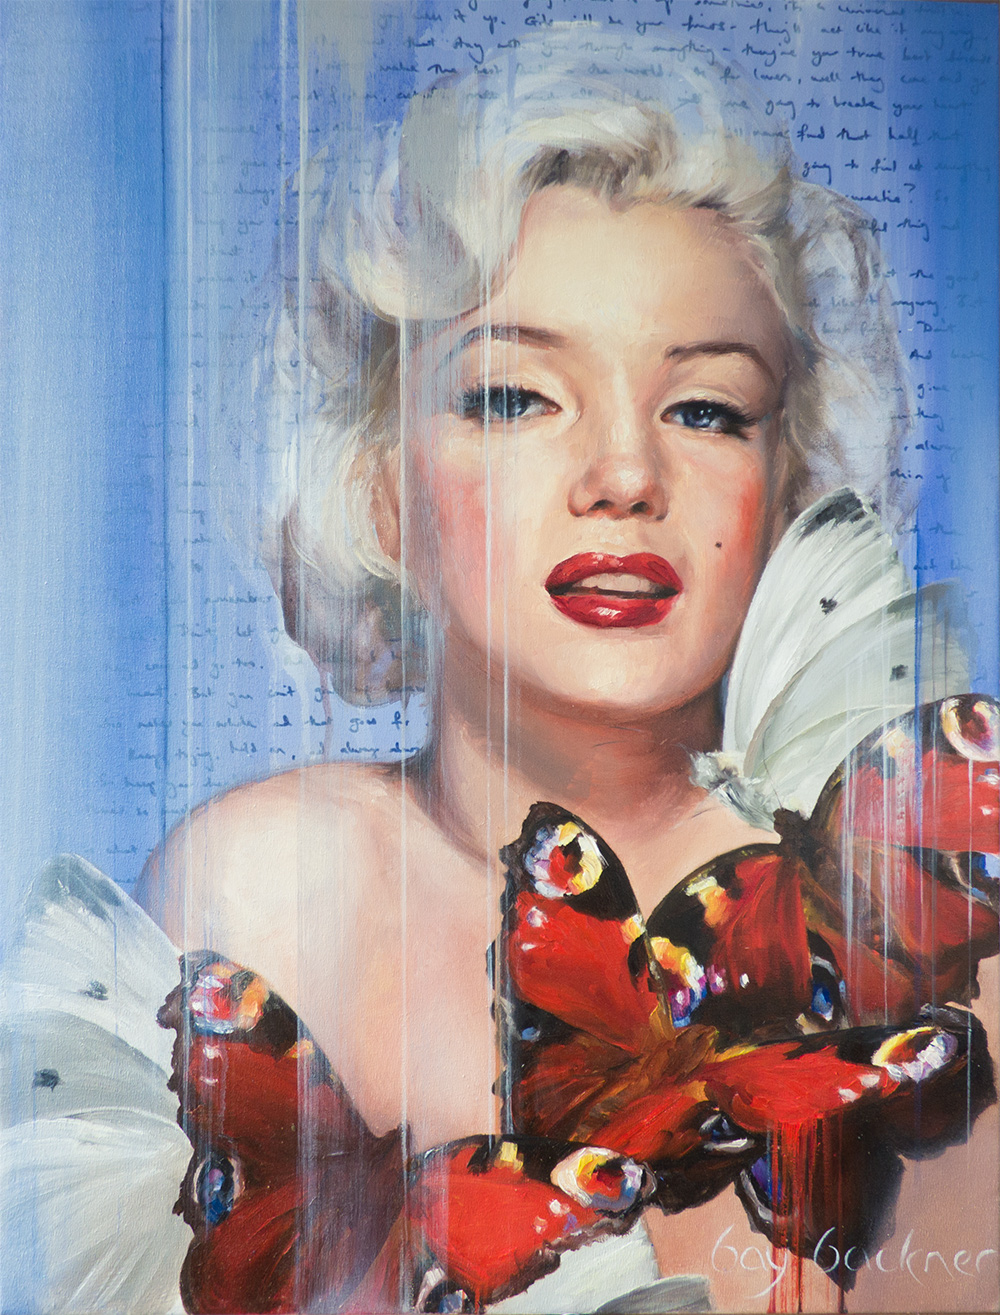 My latest painting of the iconic Marilyn Monroe